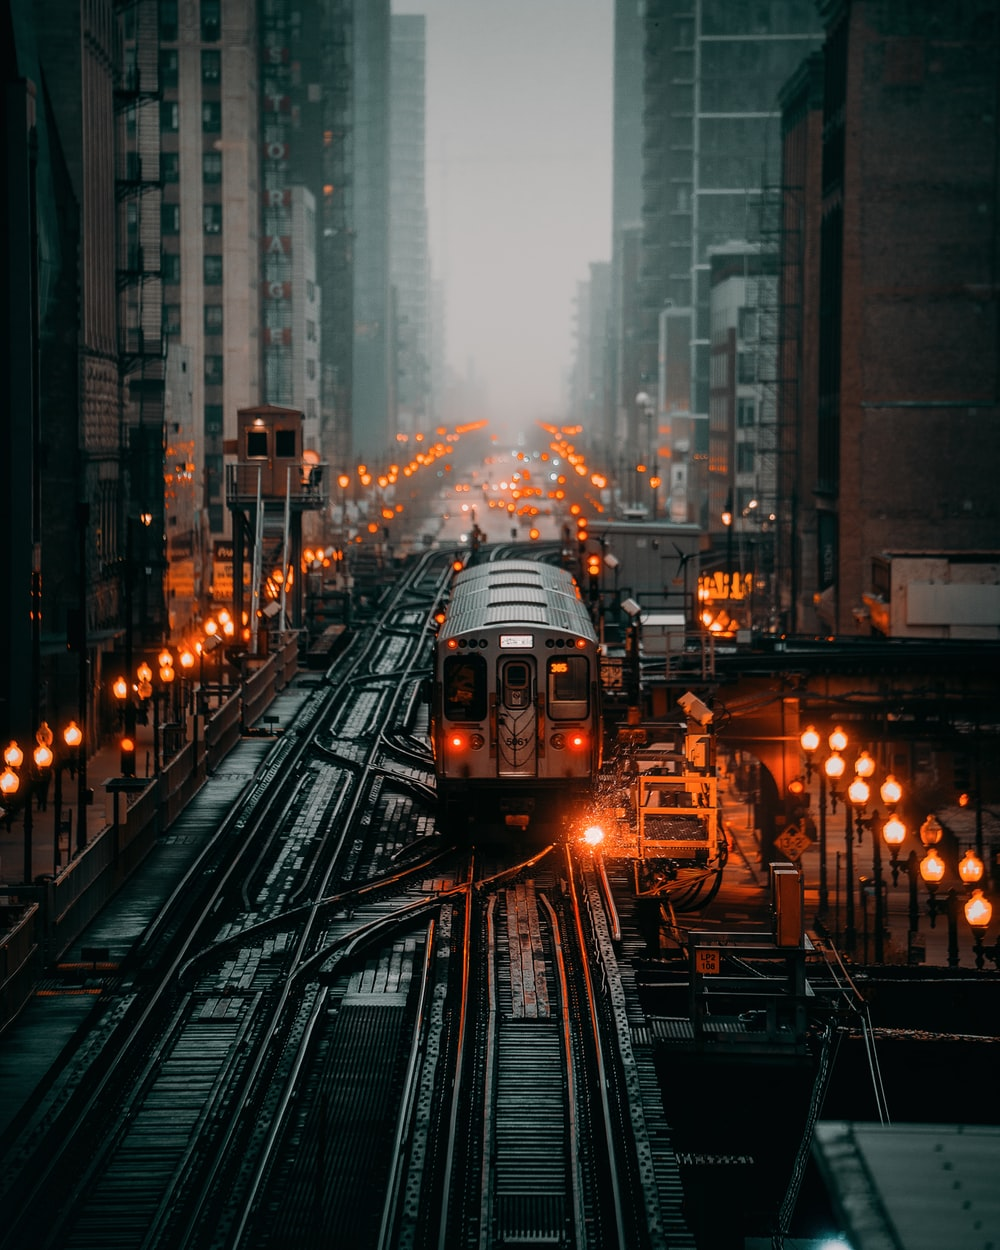 train traveling in city